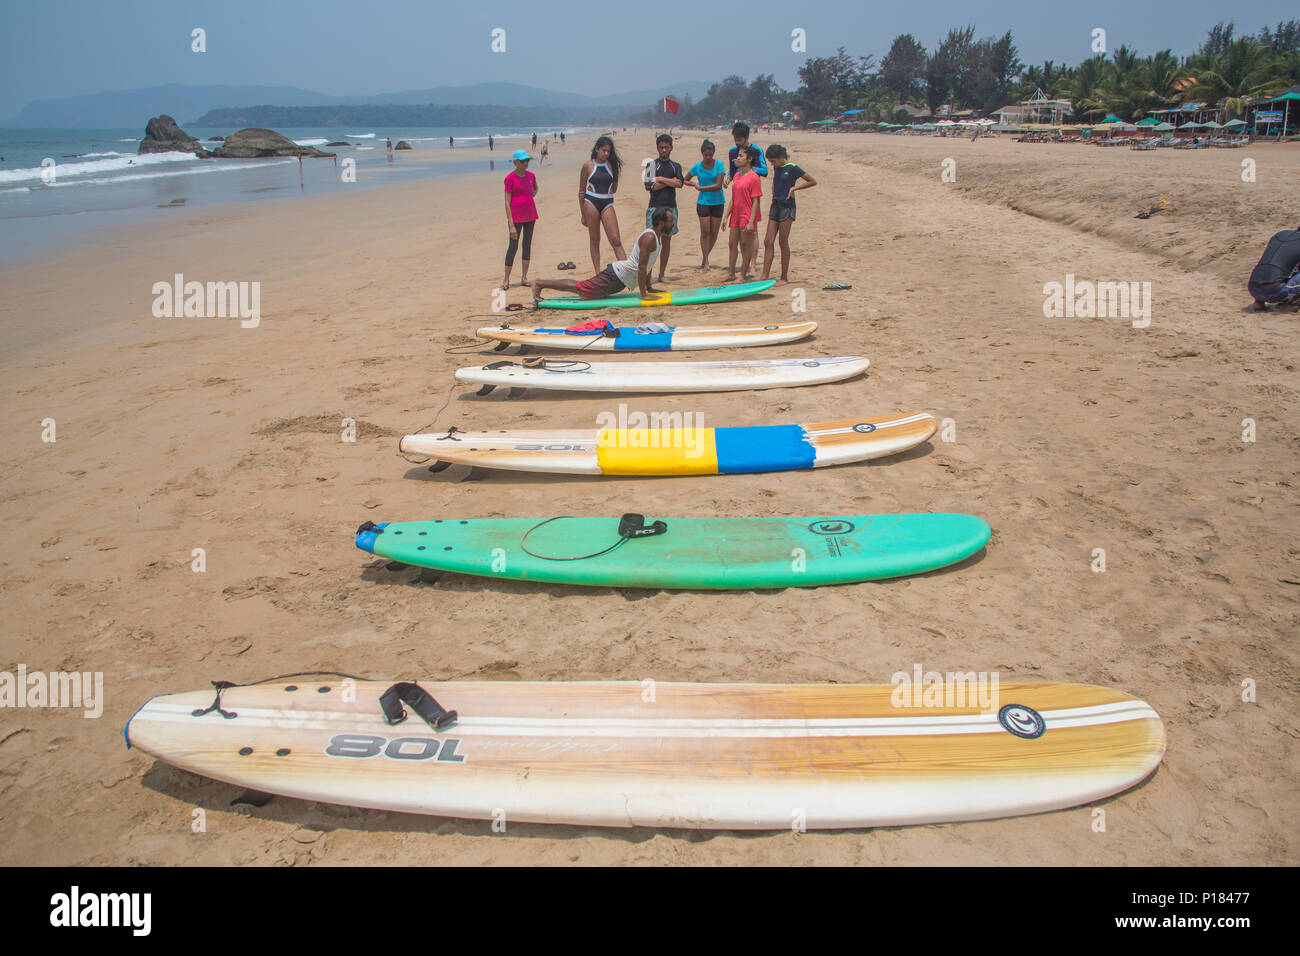 A bunch of boards on the beach during the start of surfing lessons on Agonda beach in Goa, India. - Stock Image